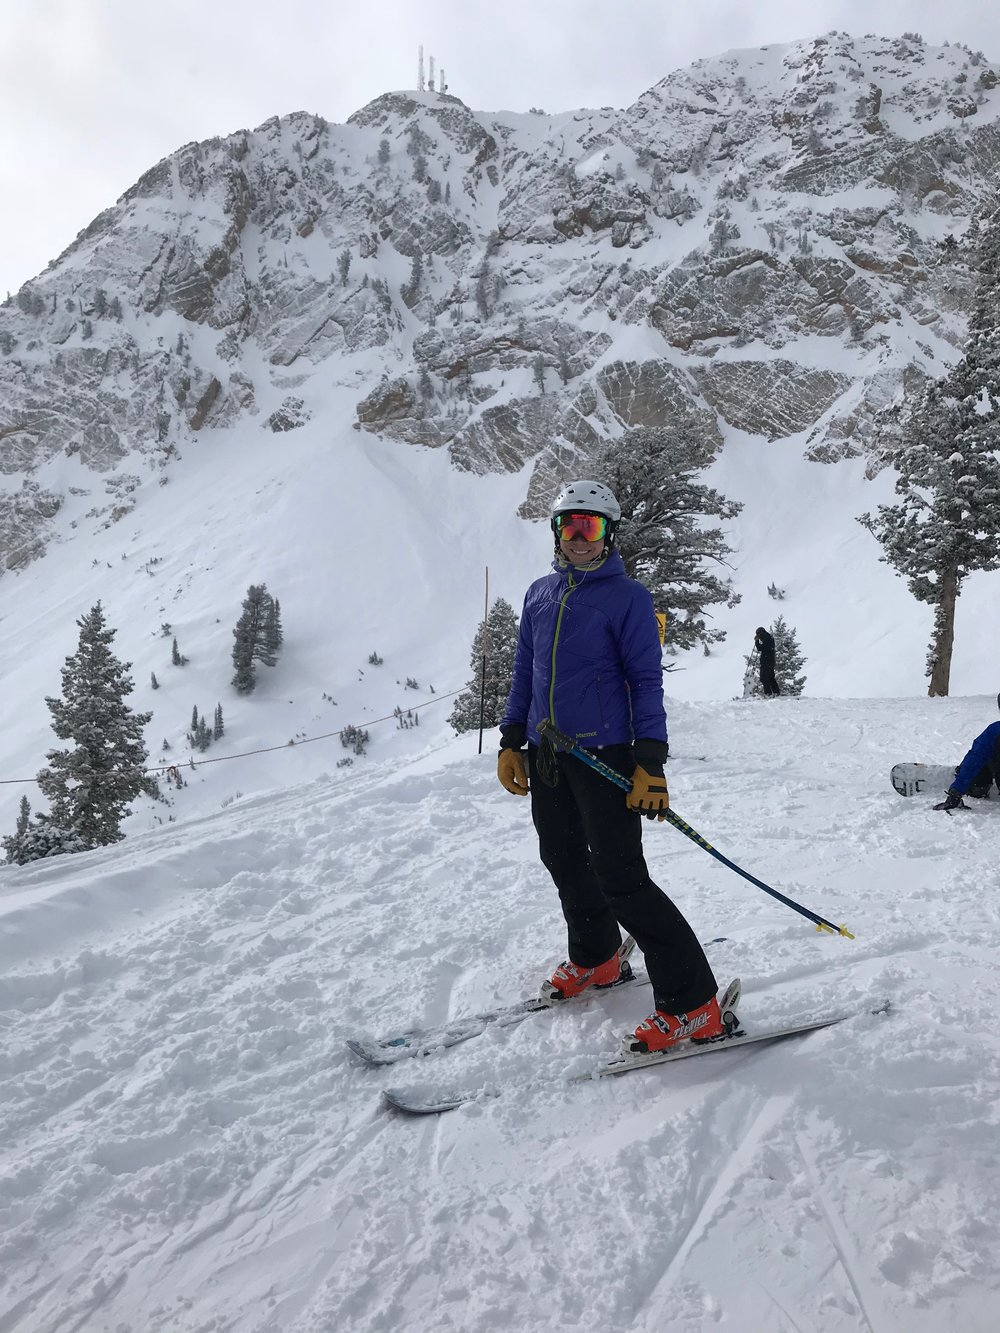 Turns at Snow Basin with friends.